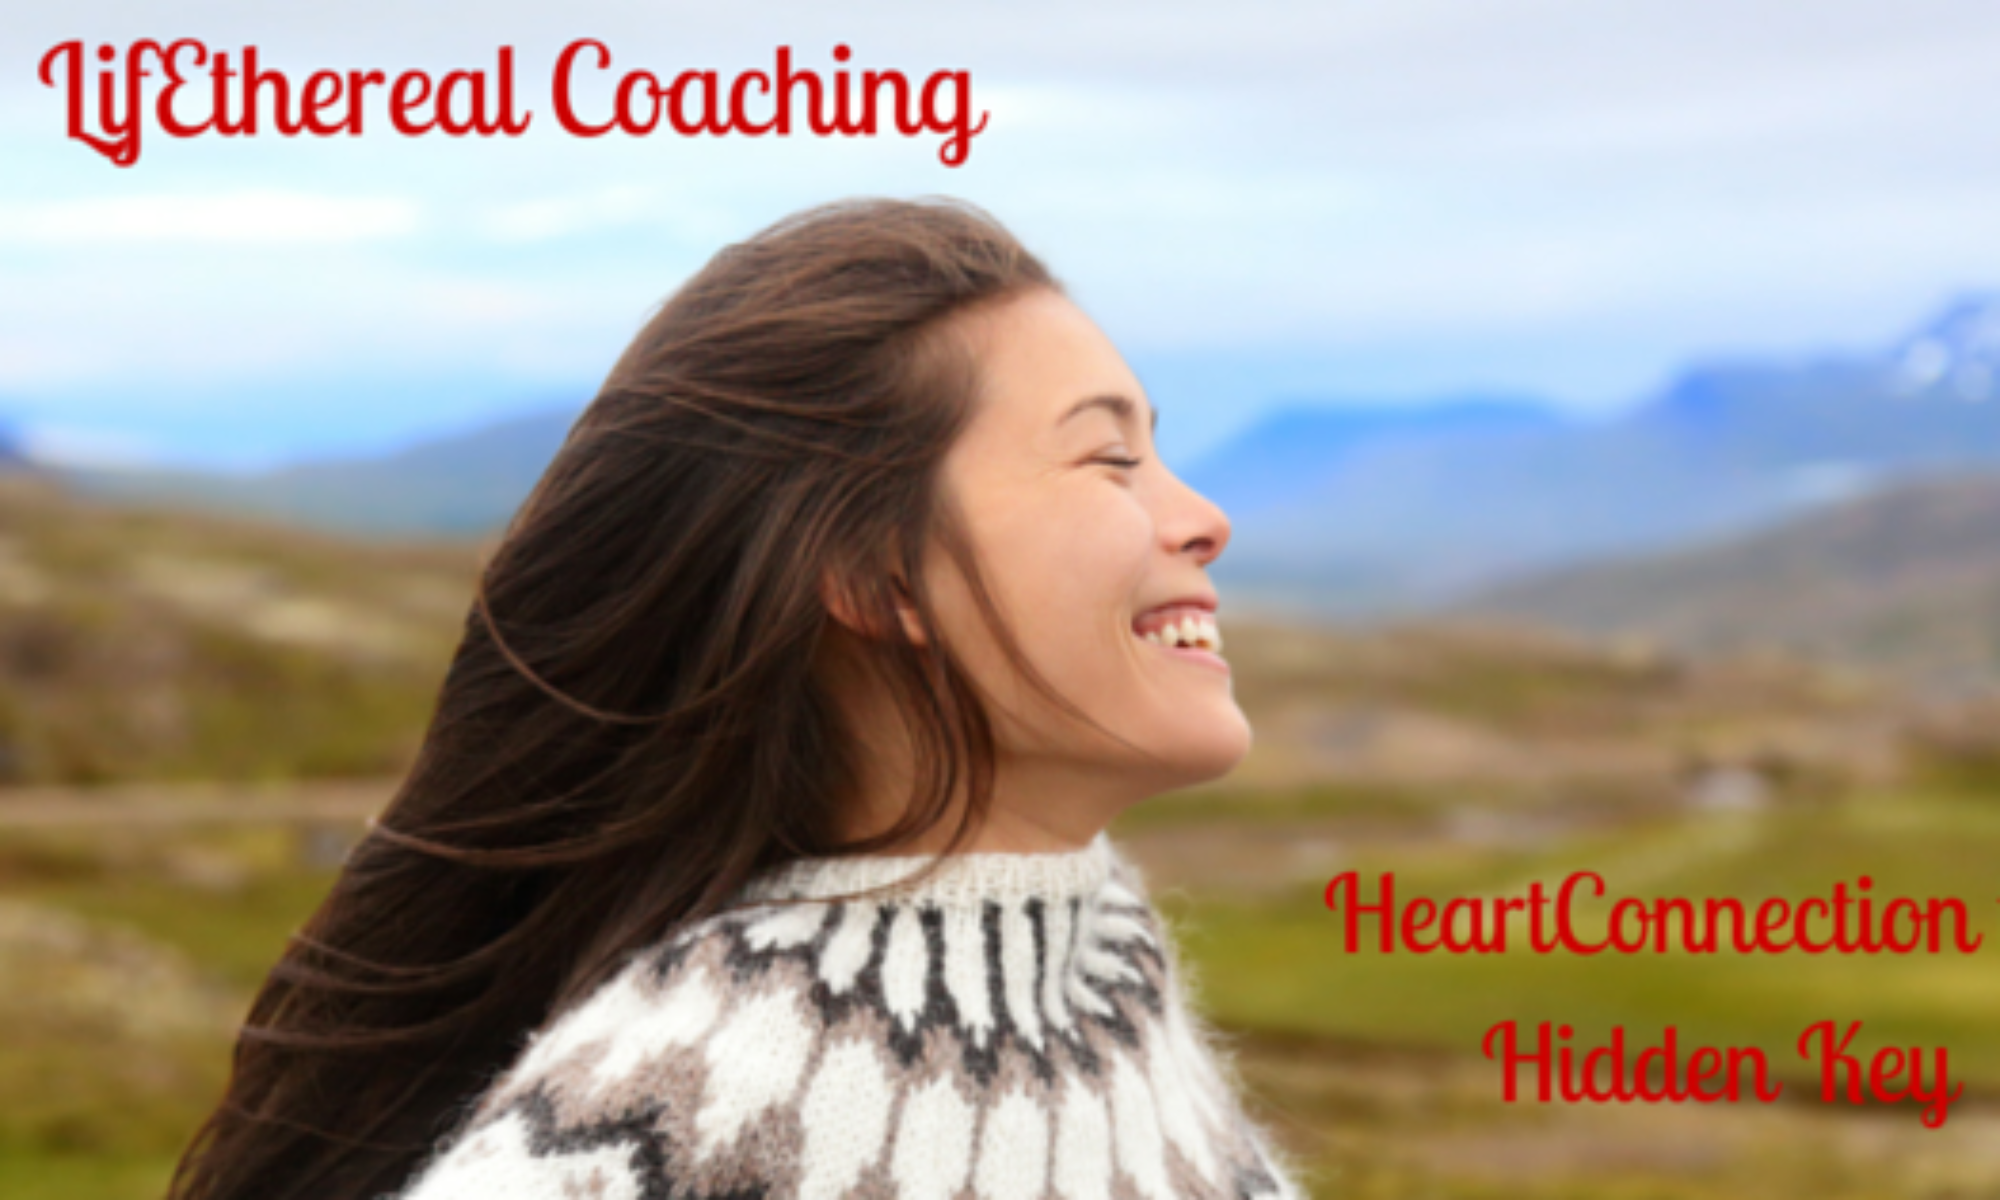 LifEthereal Coaching